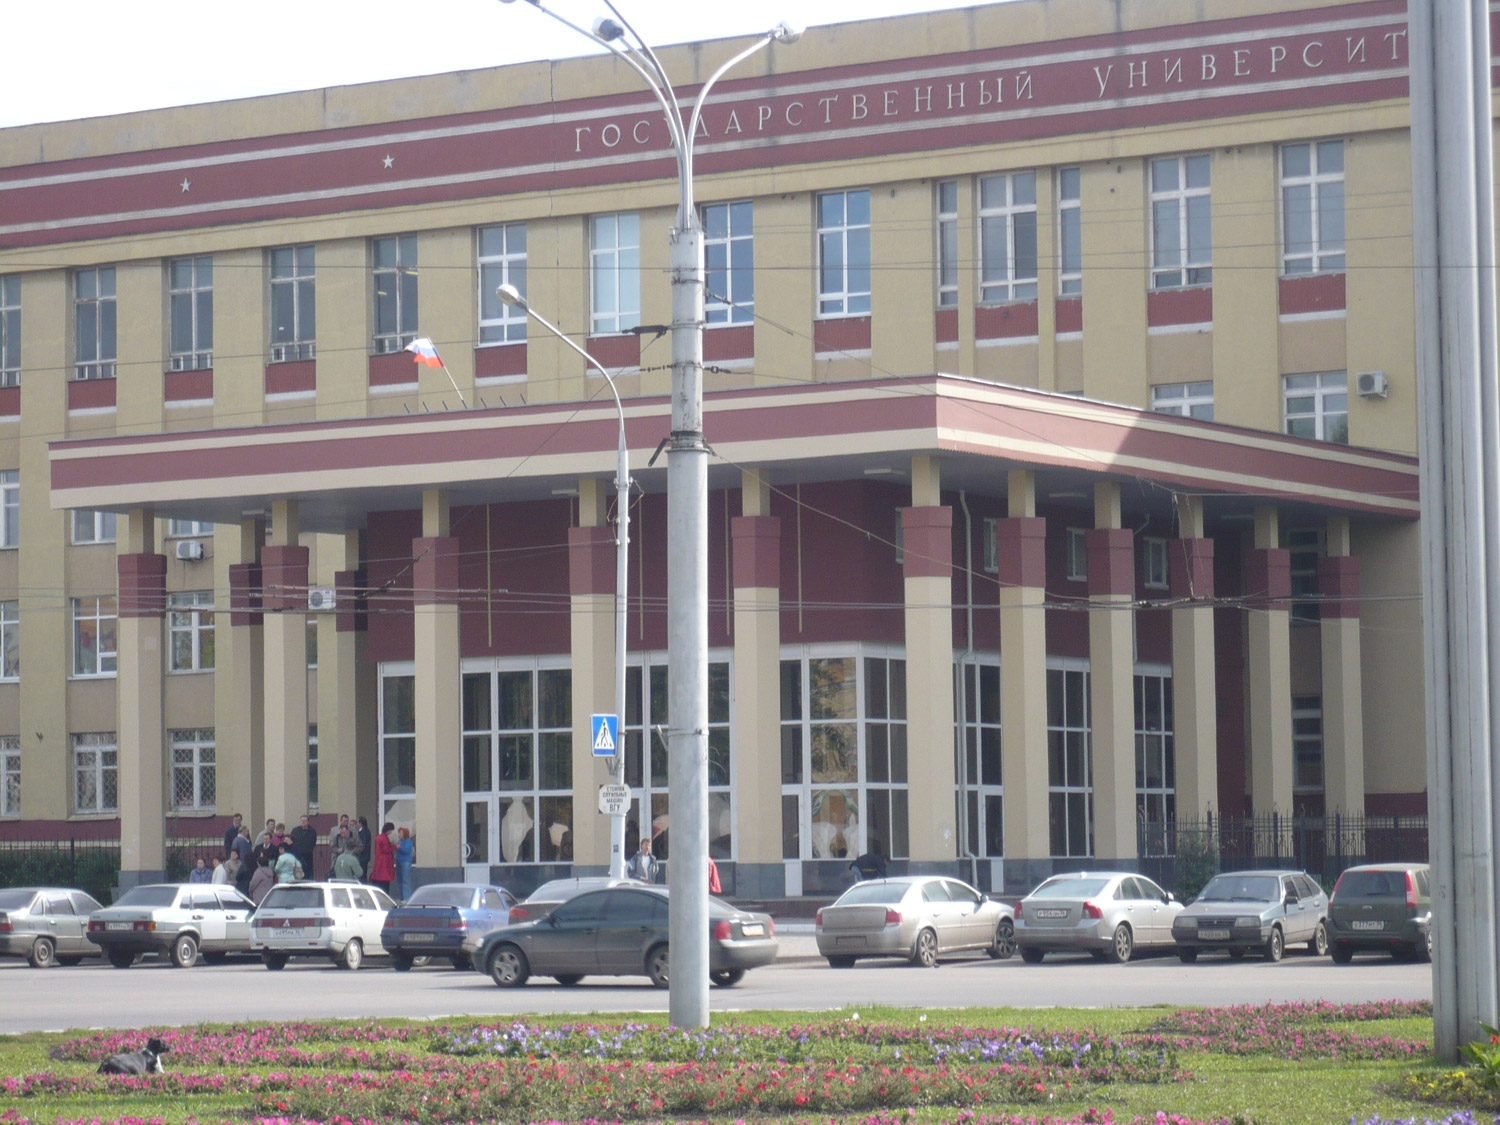 the main entrance of the Voronezh State University